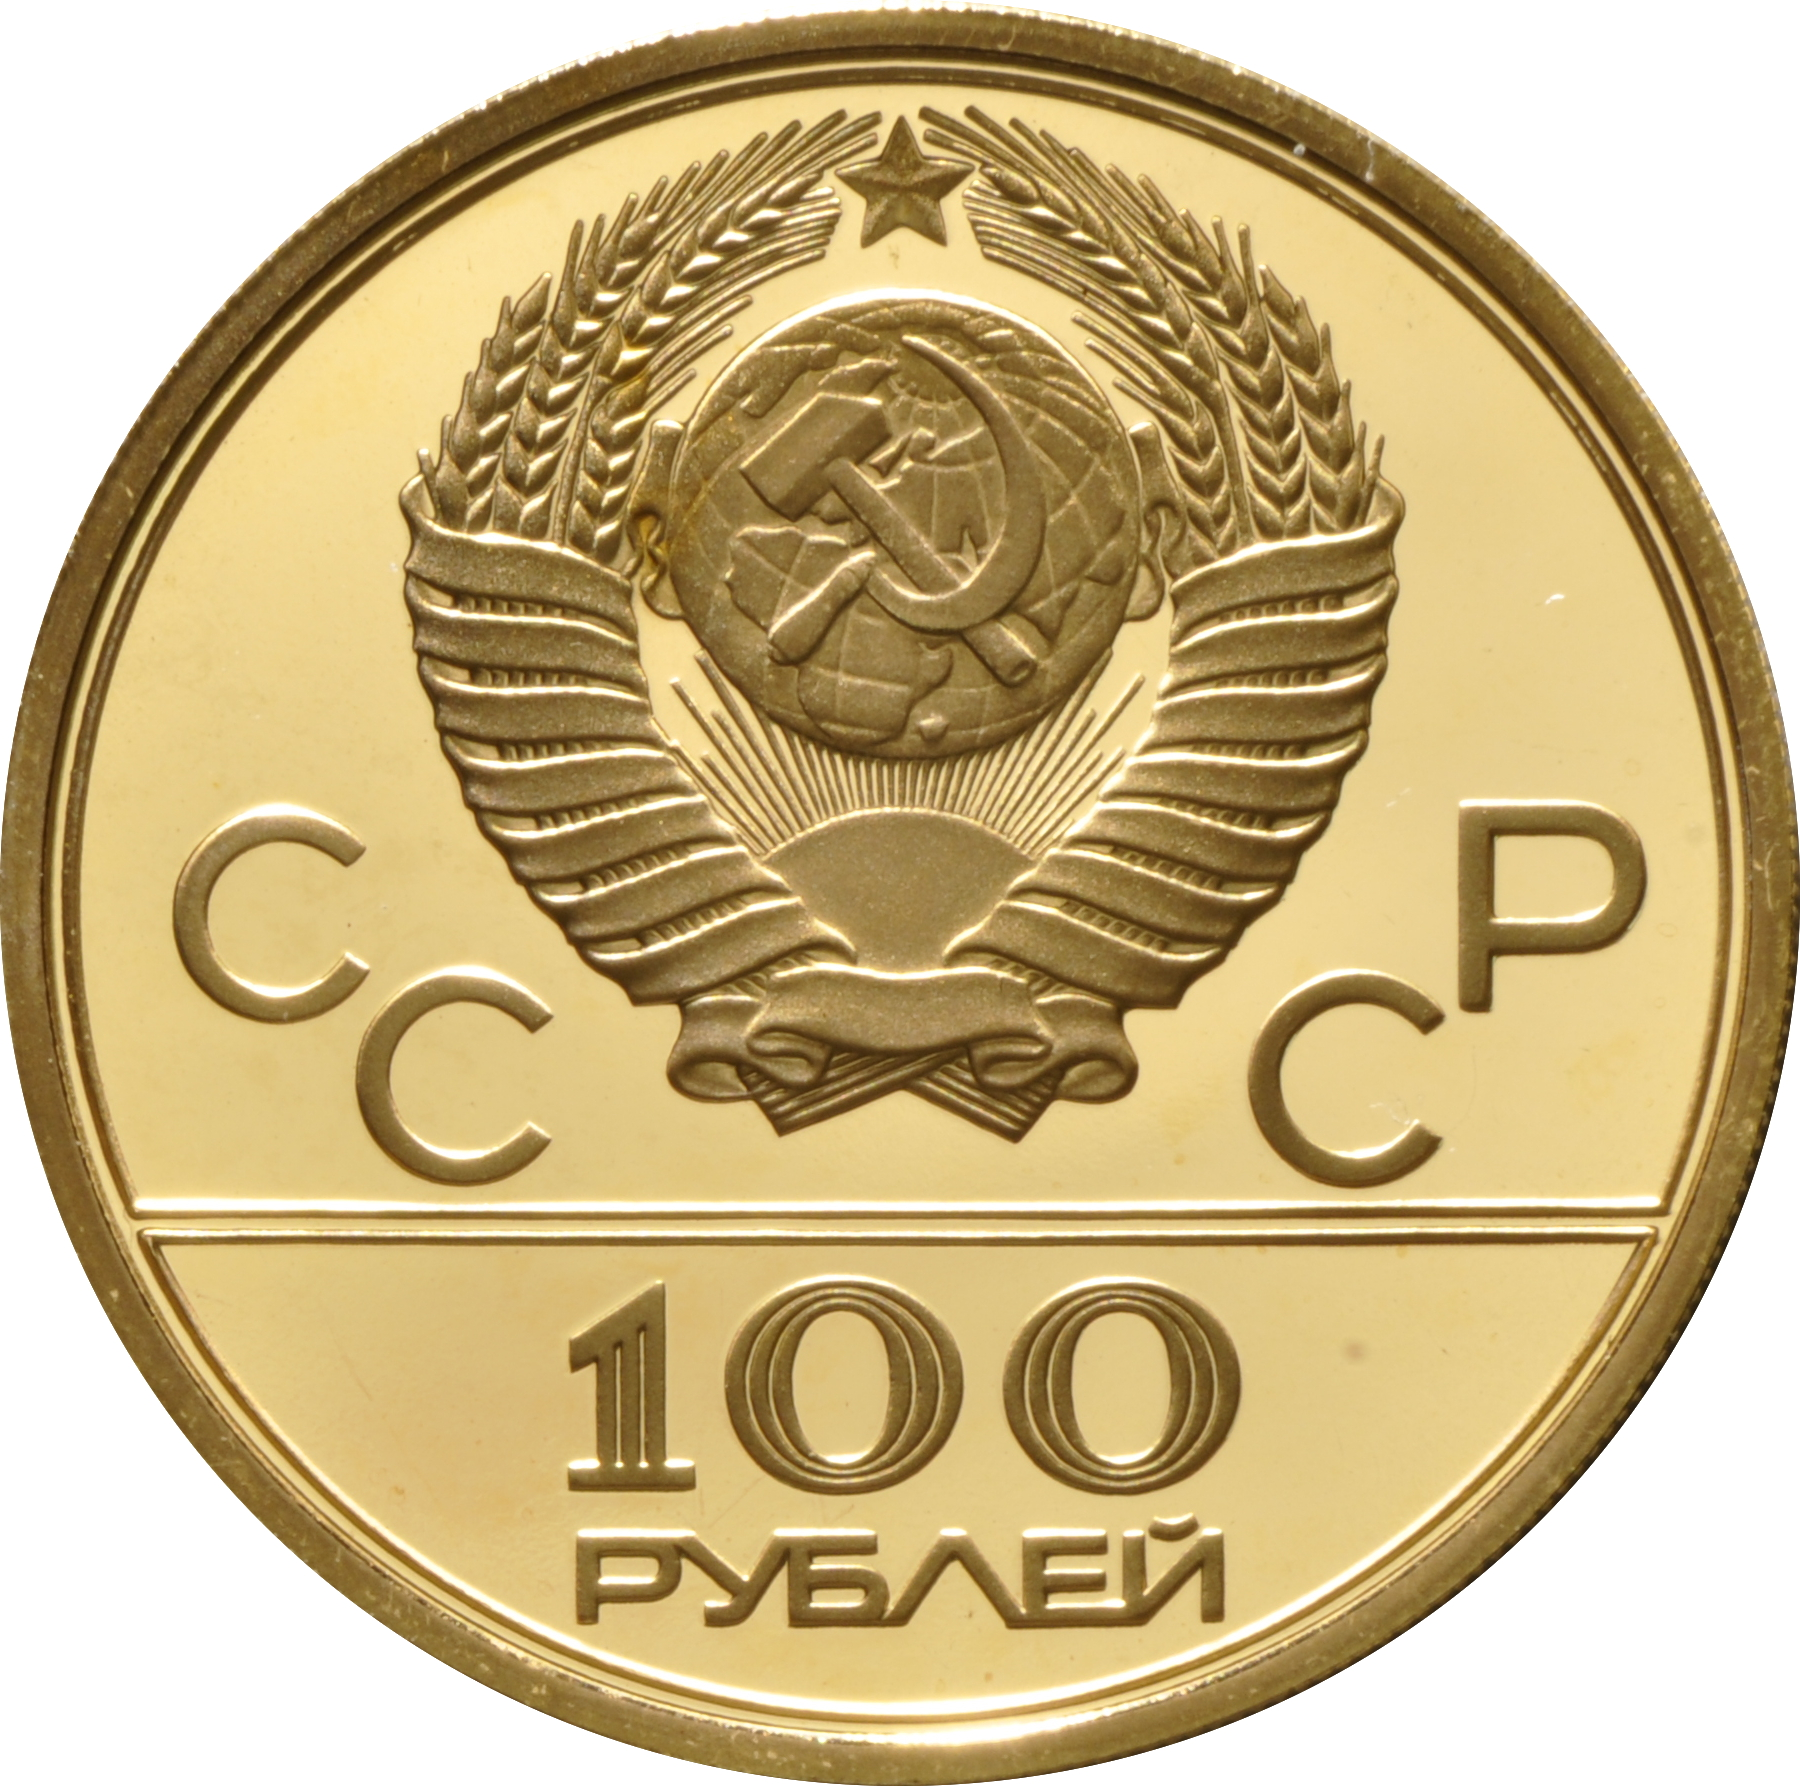 Russian 100 Rouble Half Ounce Gold Coin 163 541